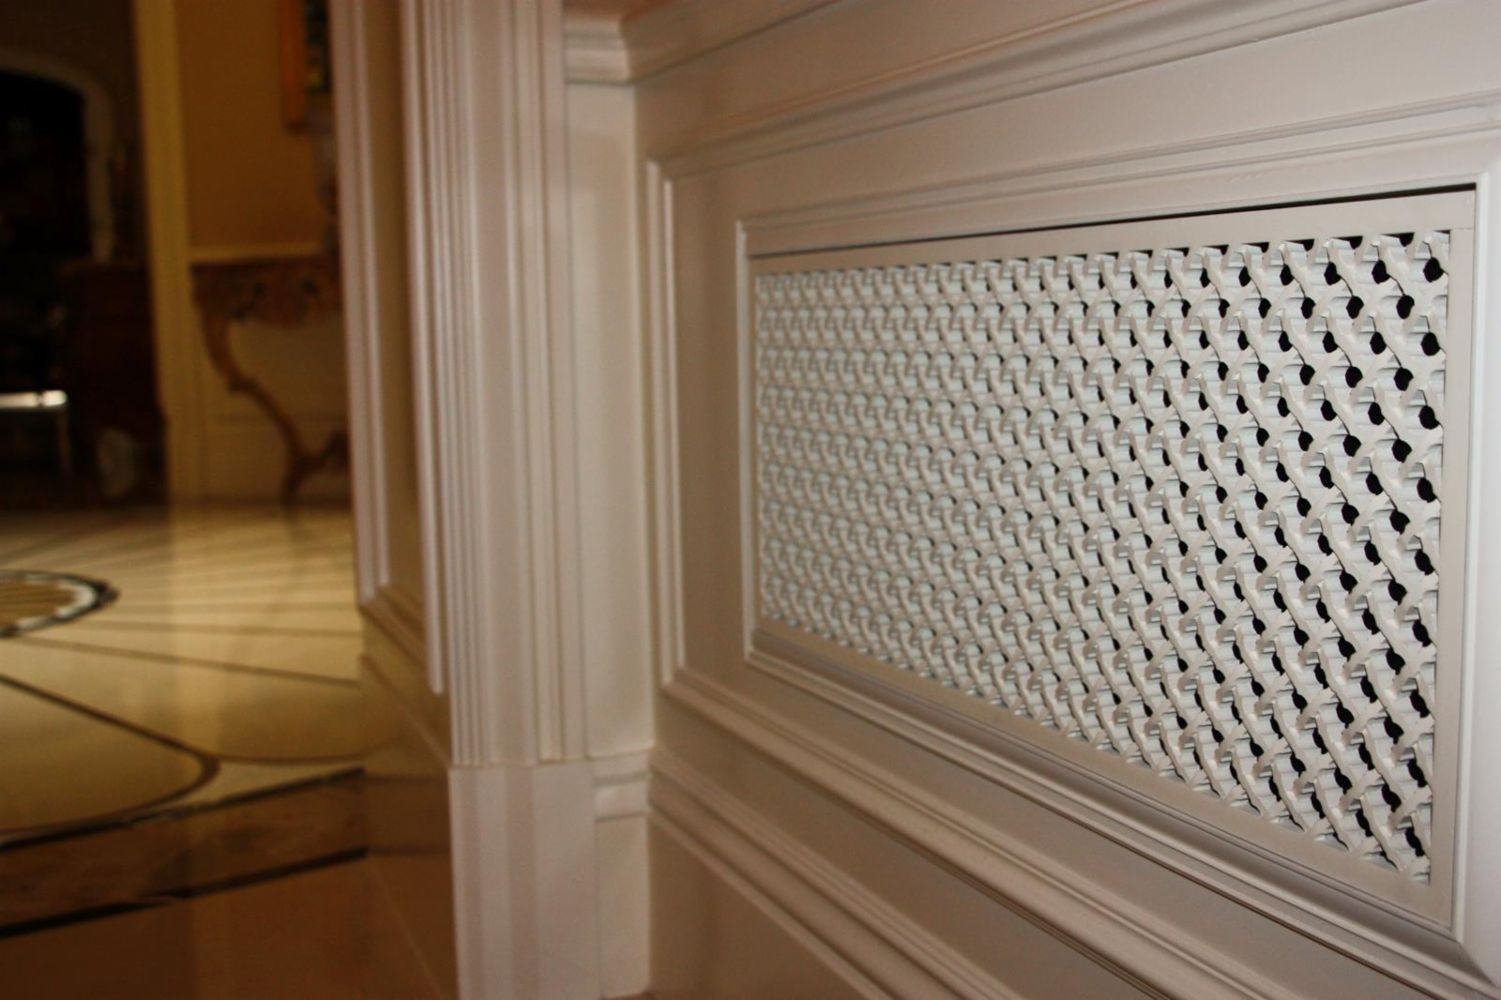 Decorative Wall Vent Covers awkward spaces turned functional Home Everything Else Decorative Vent Cover Decorative Grille From